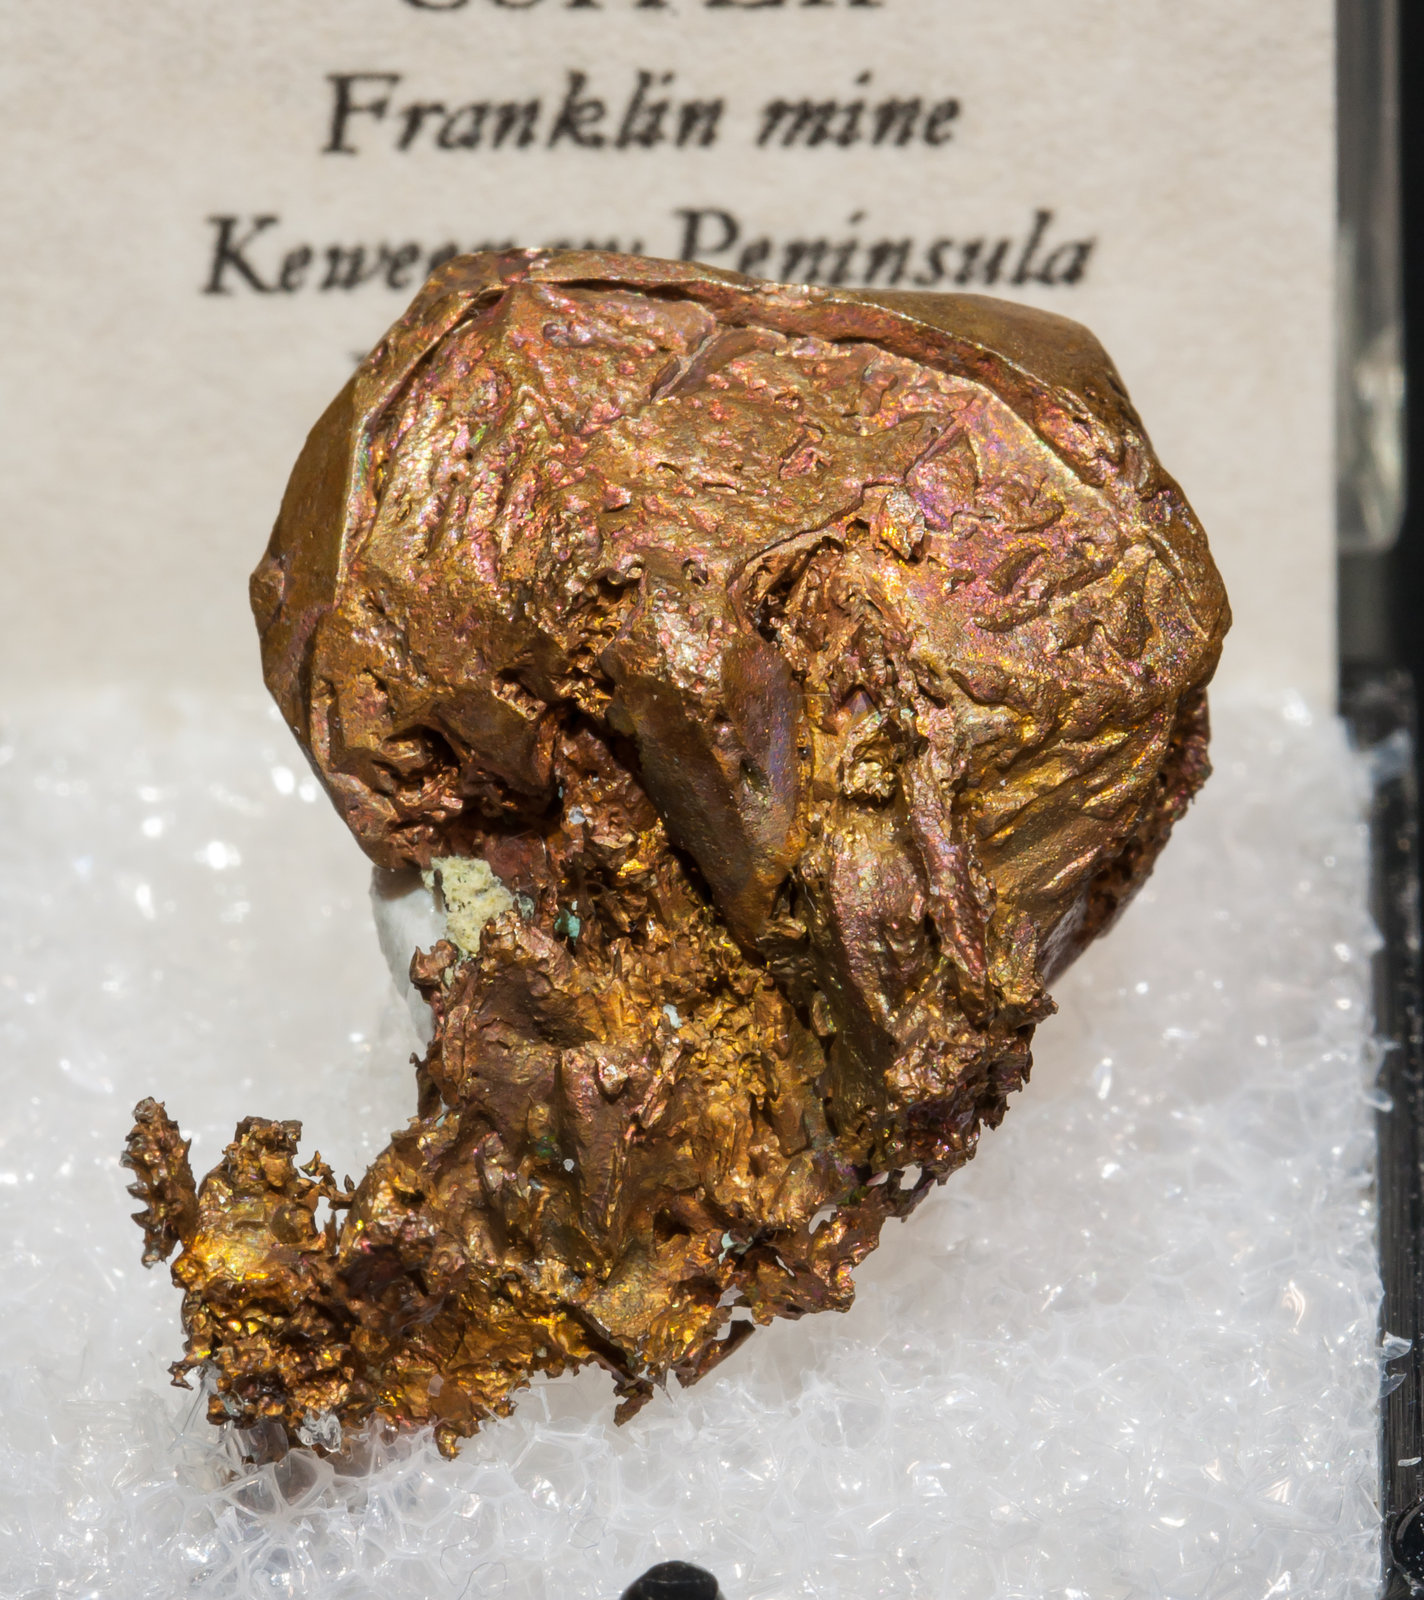 specimens/s_imagesAH5/Copper-TF66AH5f2.jpg